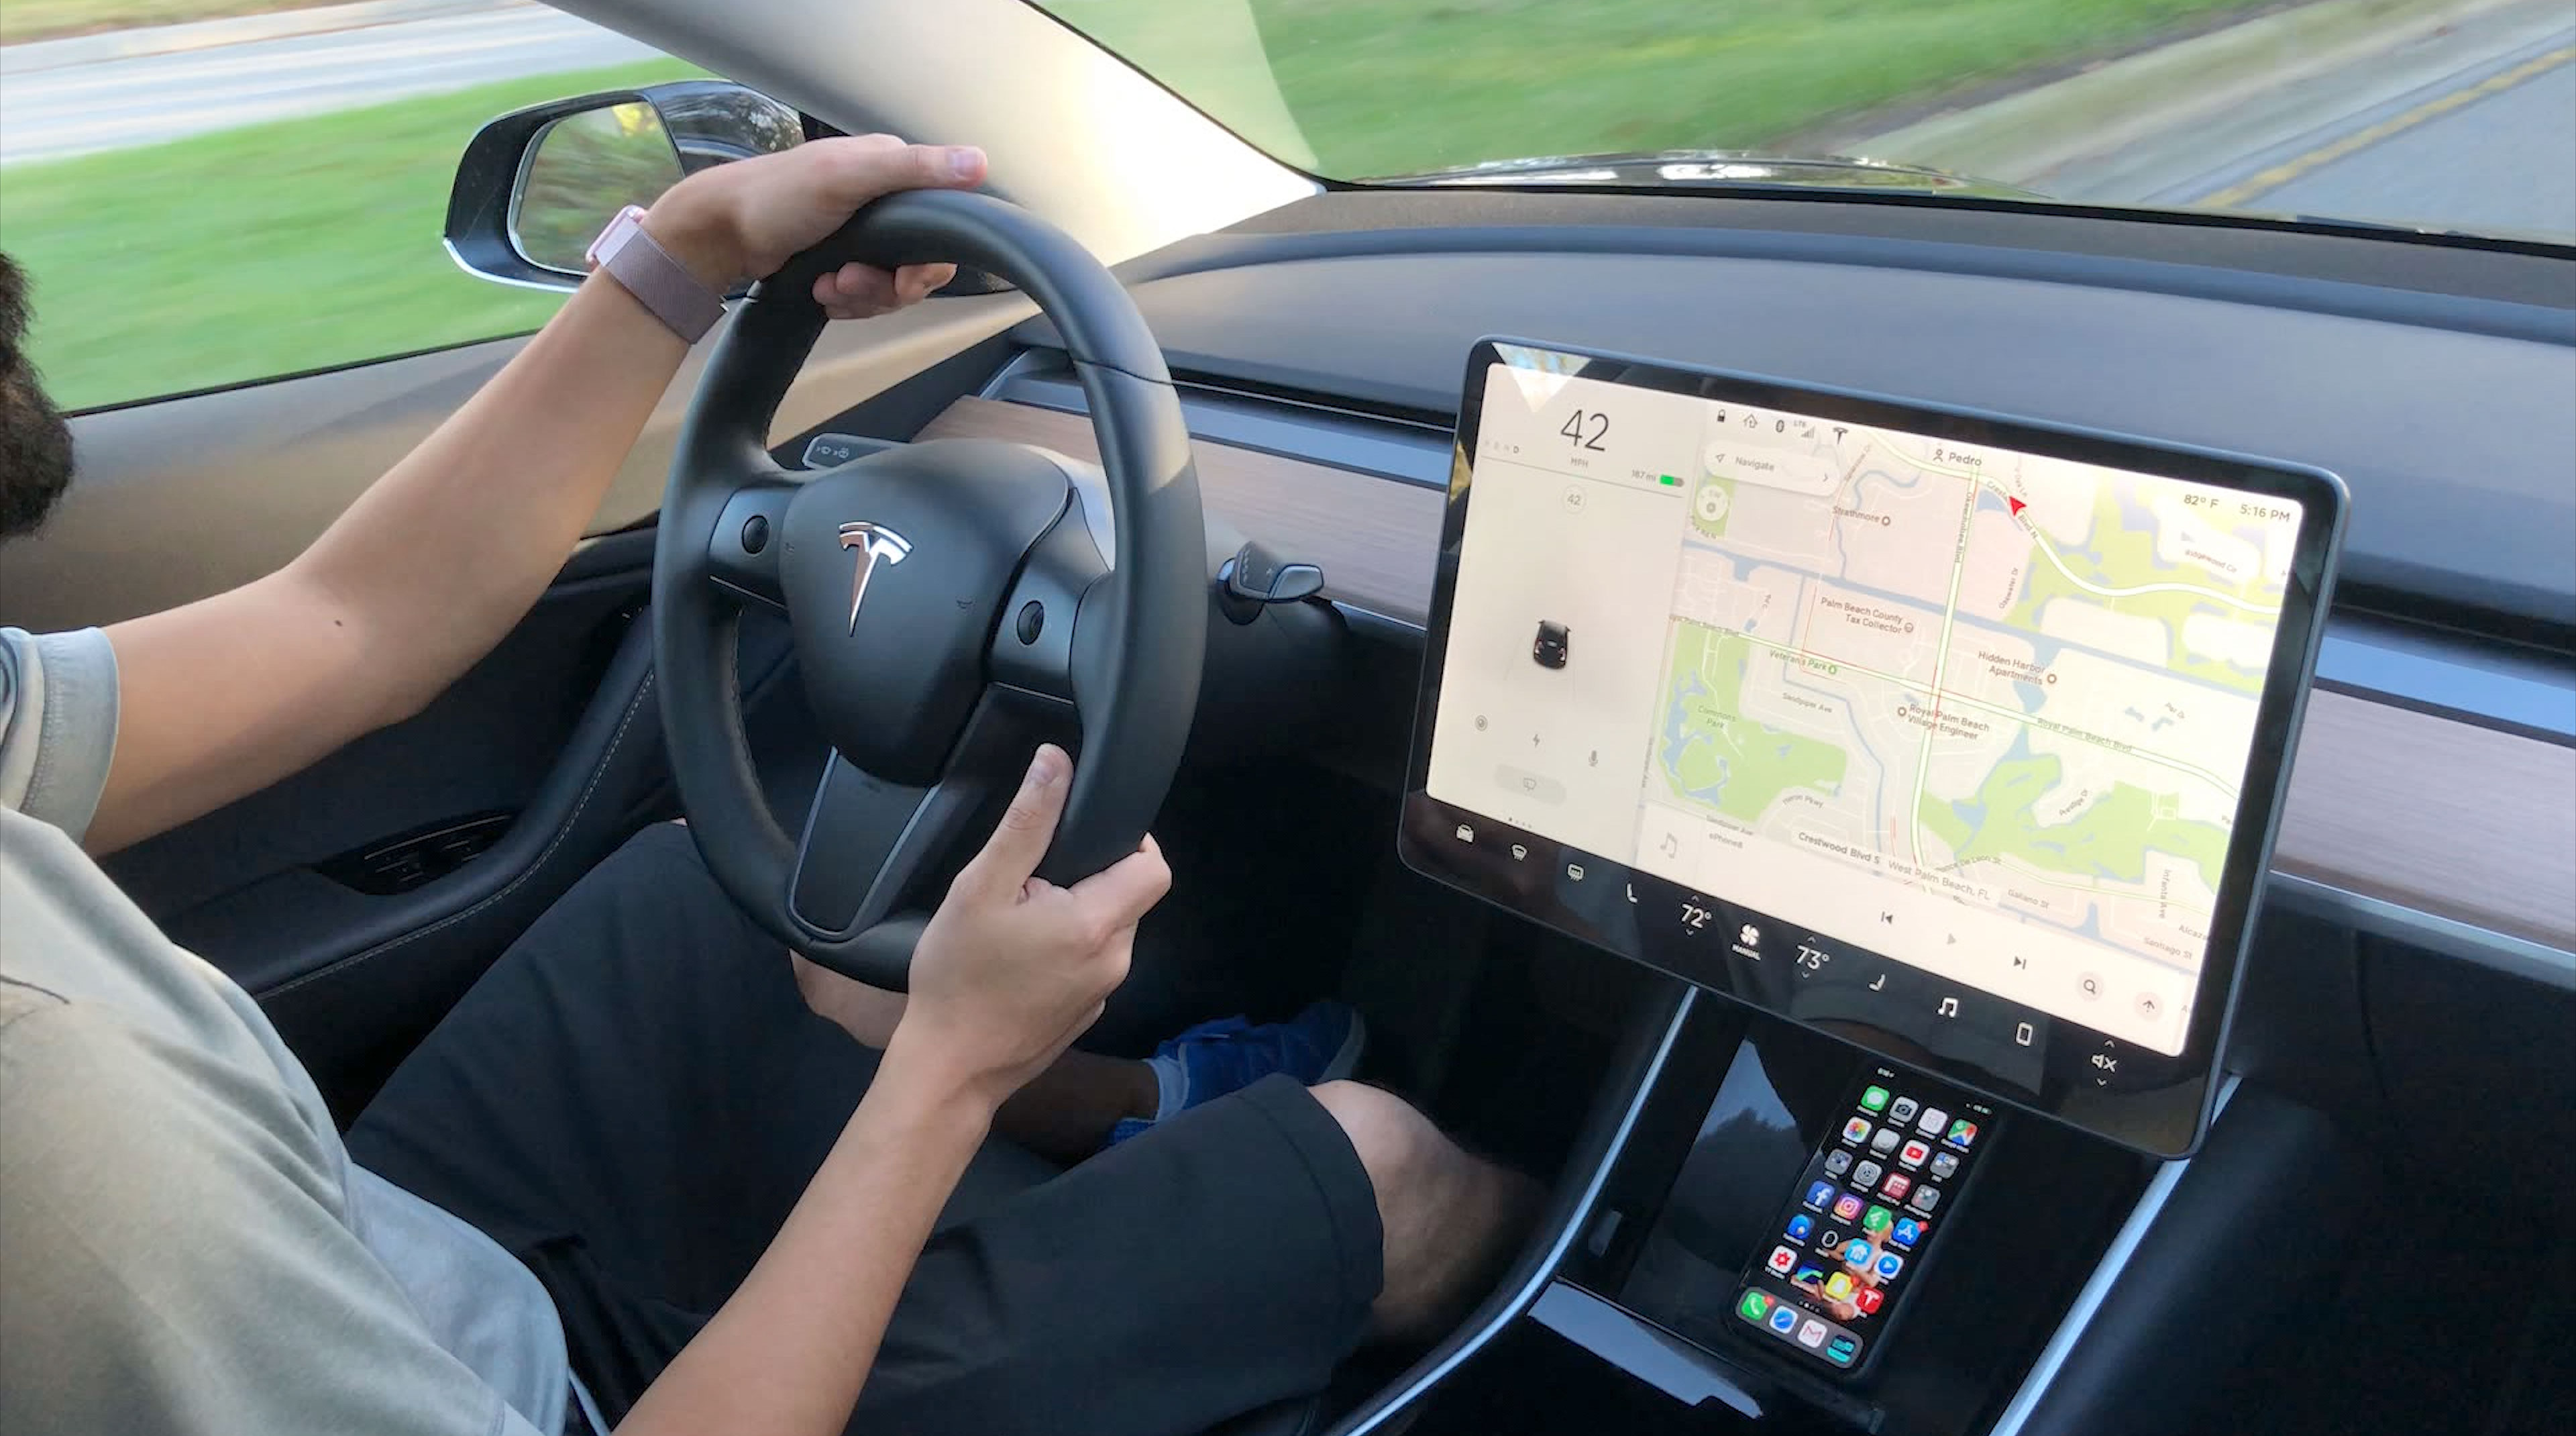 wireless qi charger for tesla model 3 by adafruit thingiverse rh thingiverse com